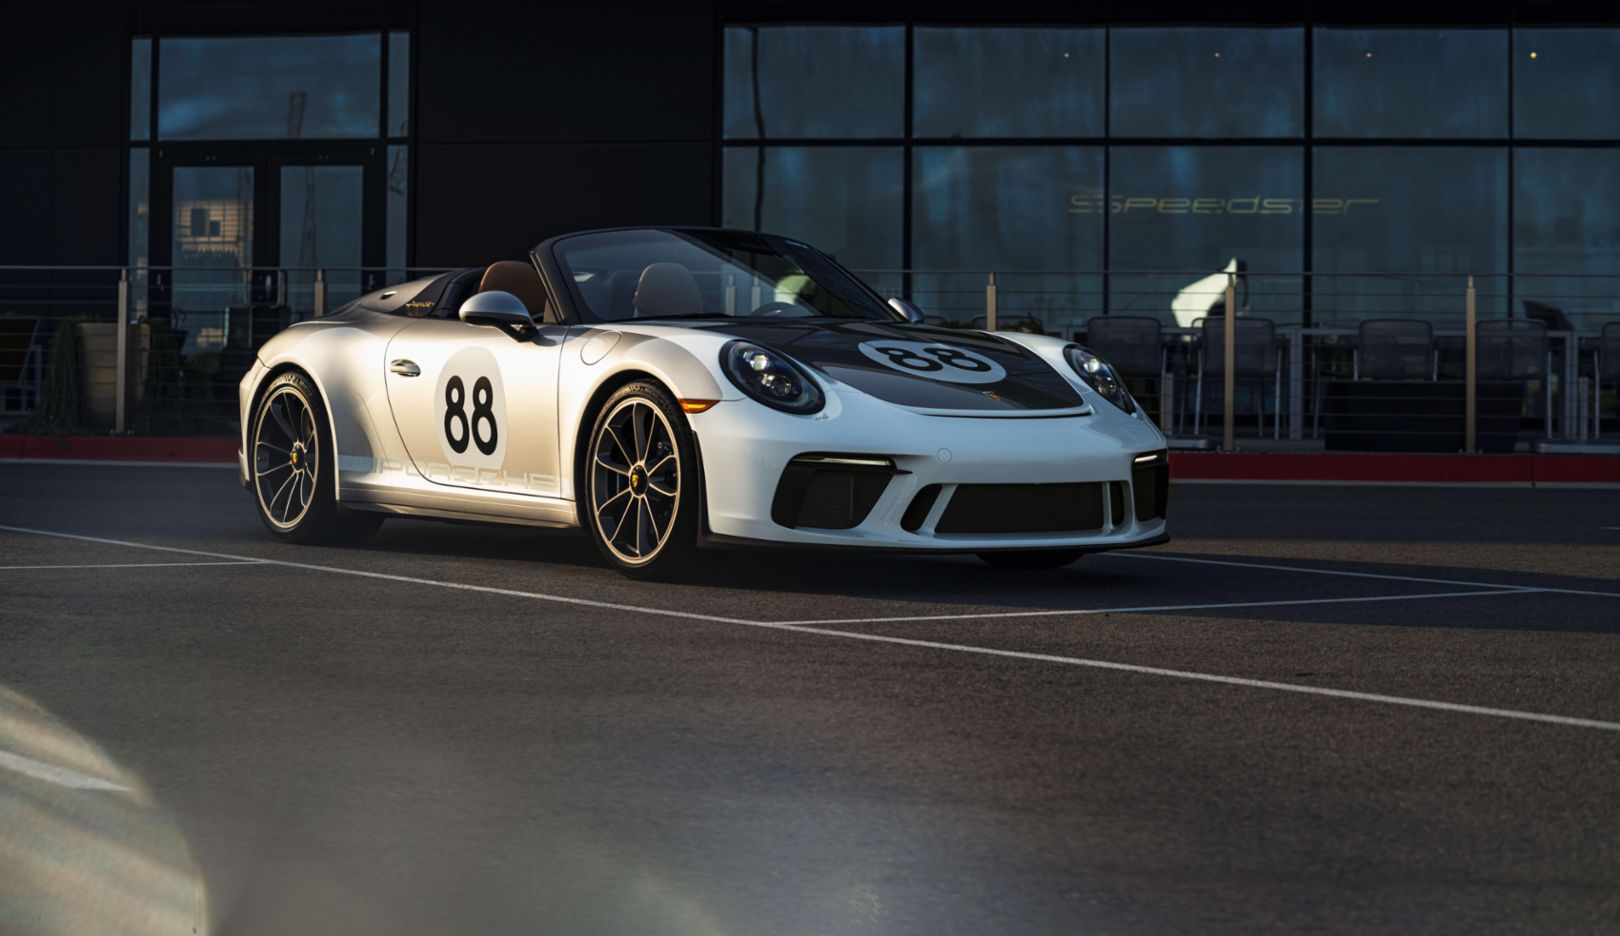 Porsche and RM Sotheby's to auction last 911 (991) for charitable COVID-19 fundraiser - Image 3